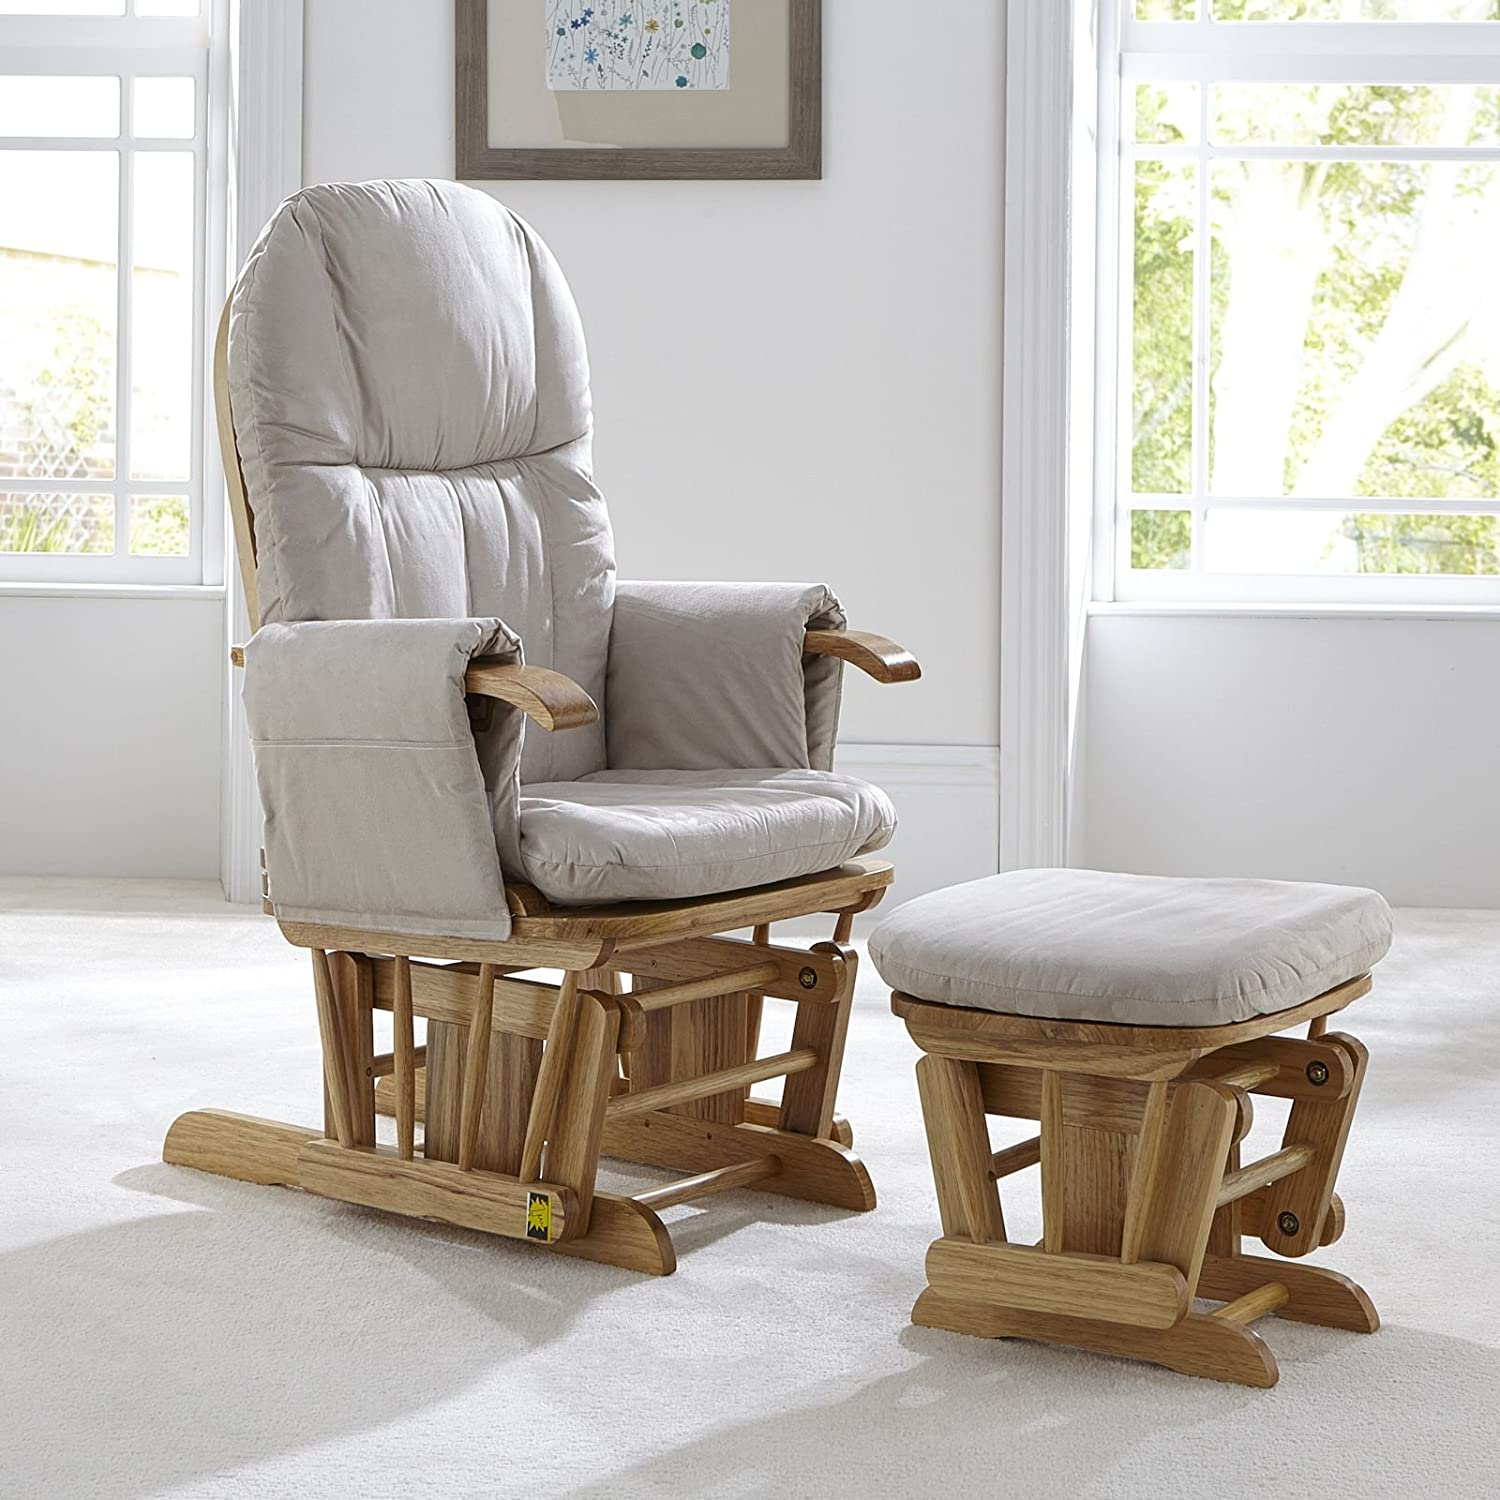 Tutti Bambini Deluxe Padded Smooth Glider Nursing Chair & Foot Stool with 3 Reclining Positions - Natural Wood Frame with Beige Soft Fabric